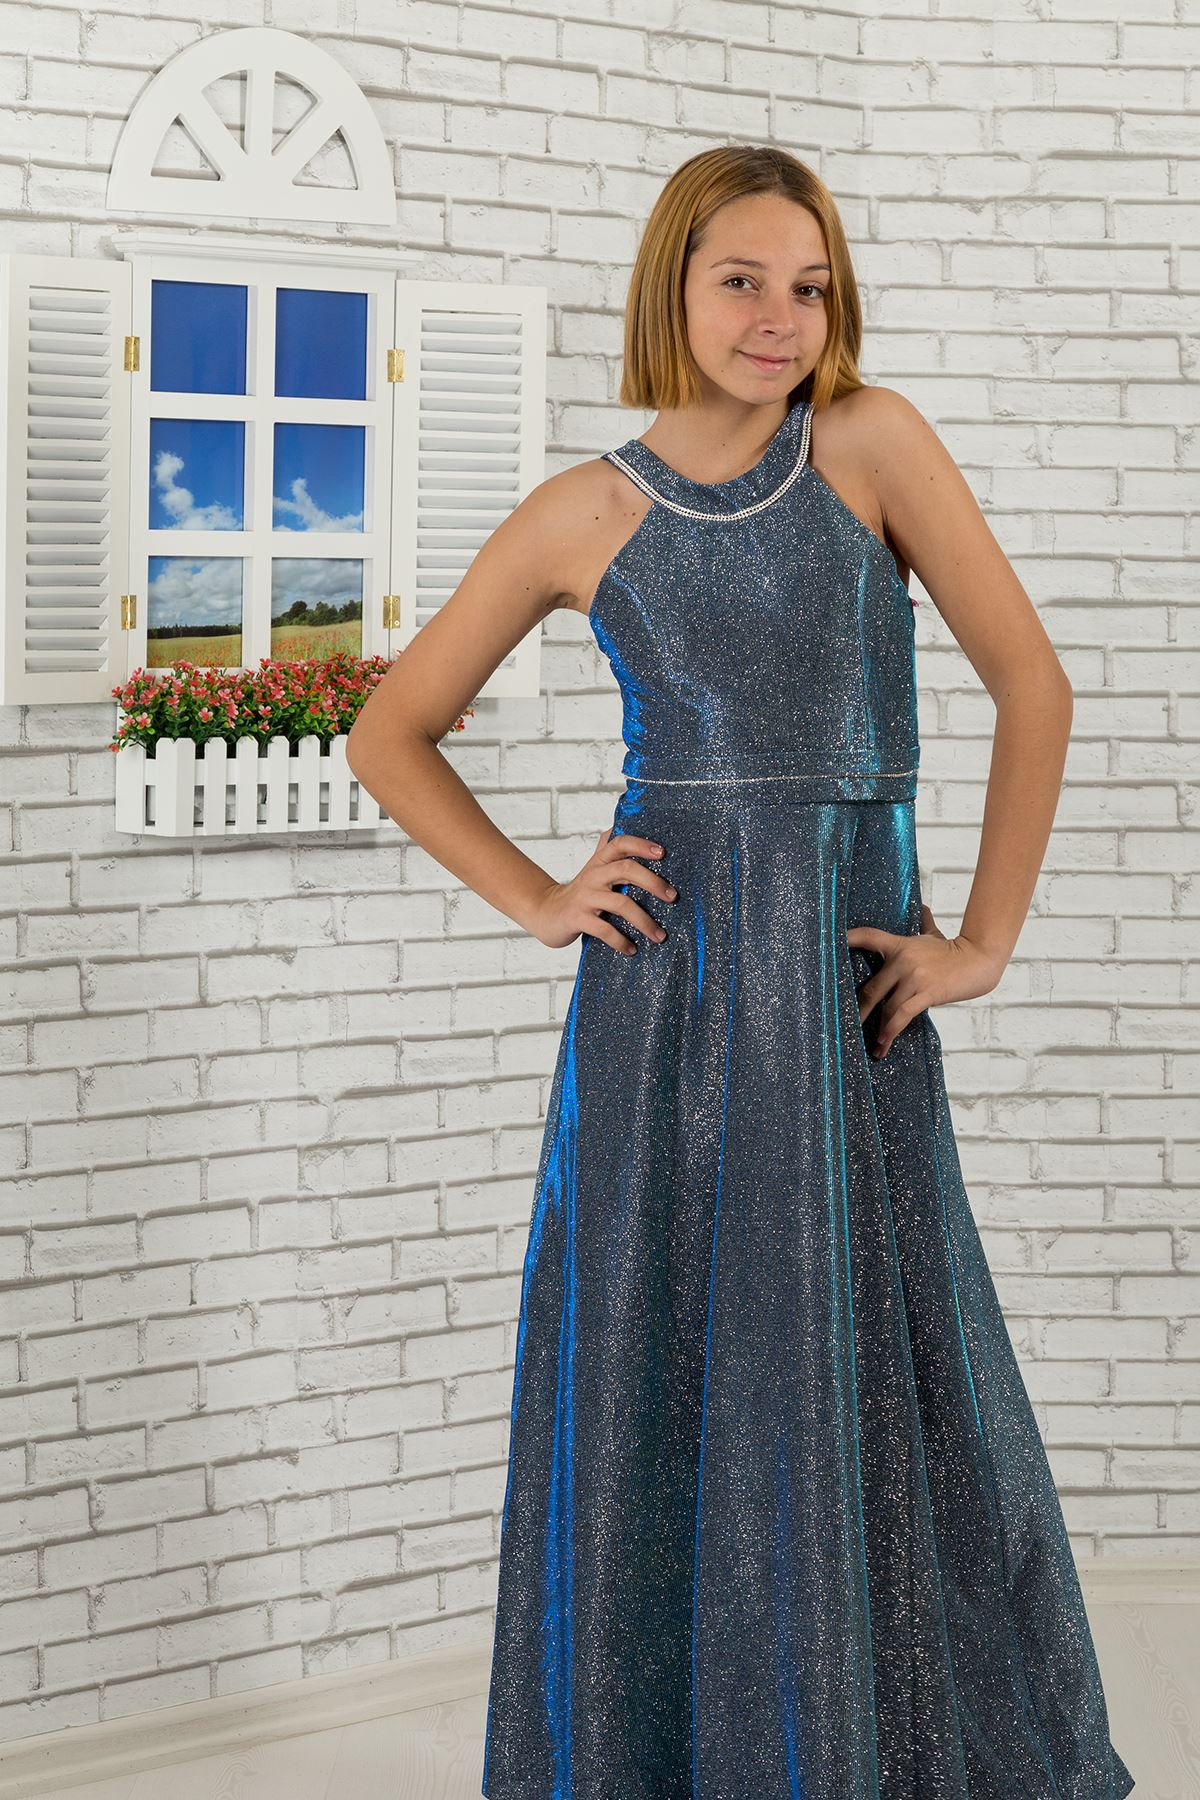 Waist and neck Stone detailed, silvery fabric girl children evening dress 480 Parliament